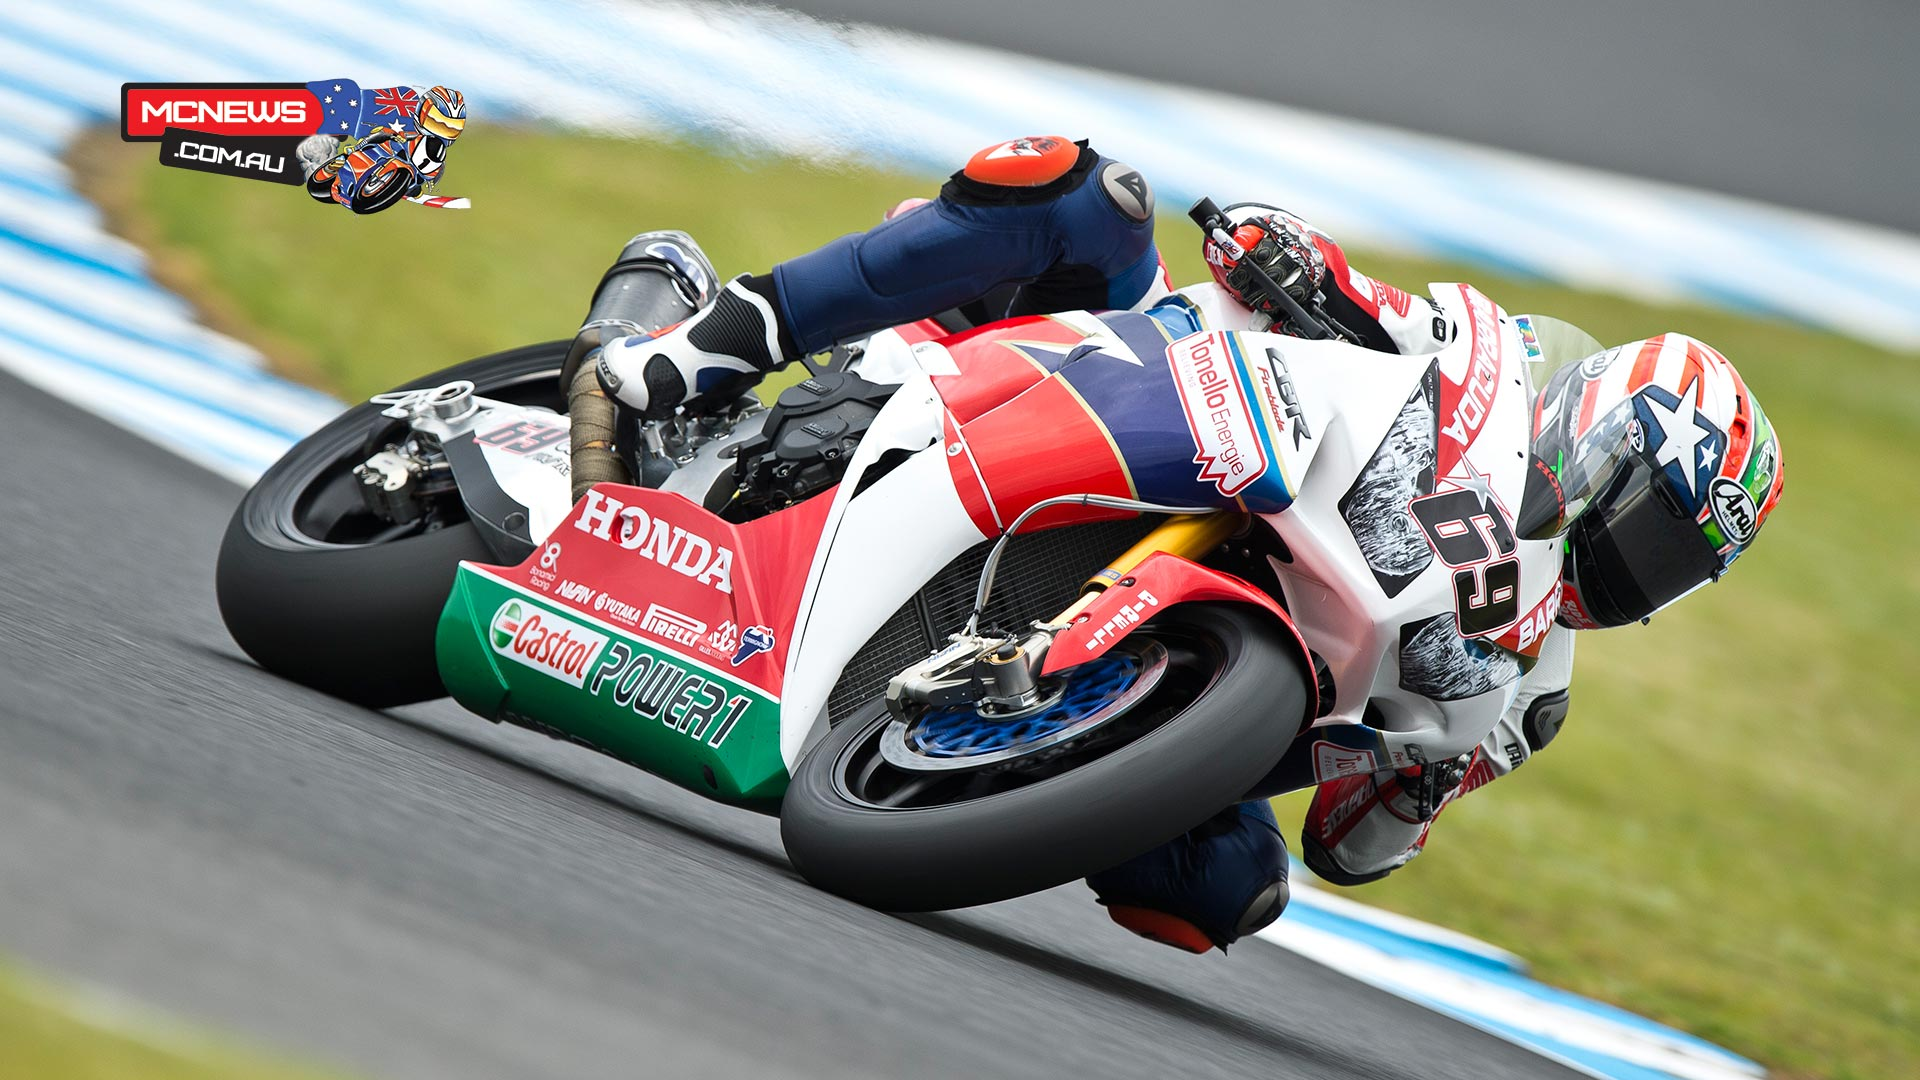 Nicky Hayden - Image by Graeme Brown